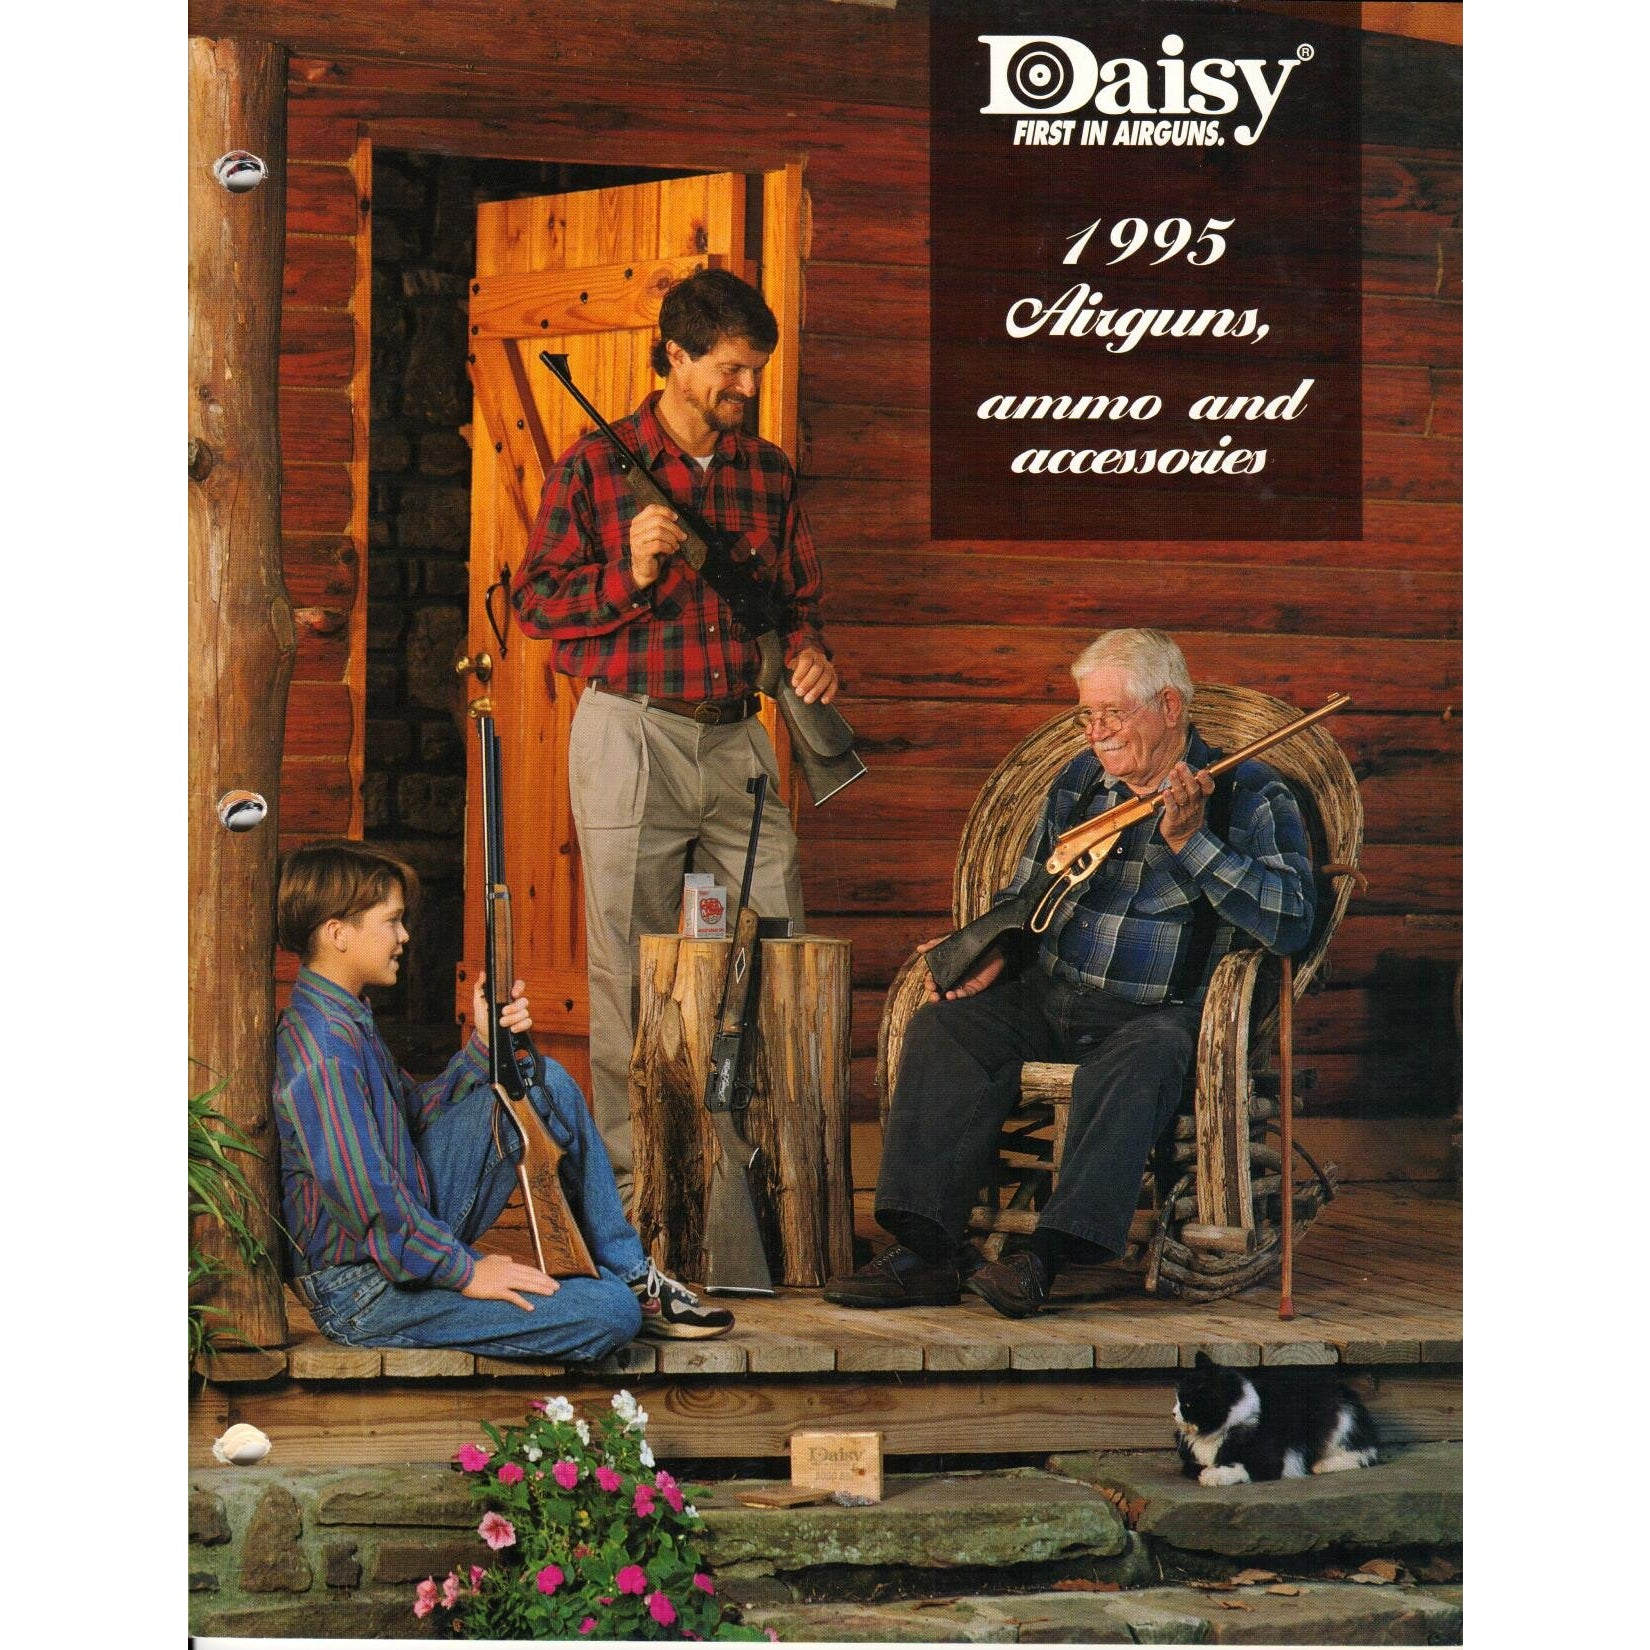 Daisy 1995 Airguns, Ammo & Accessories,Catalogues & Brochures- Canada Brass